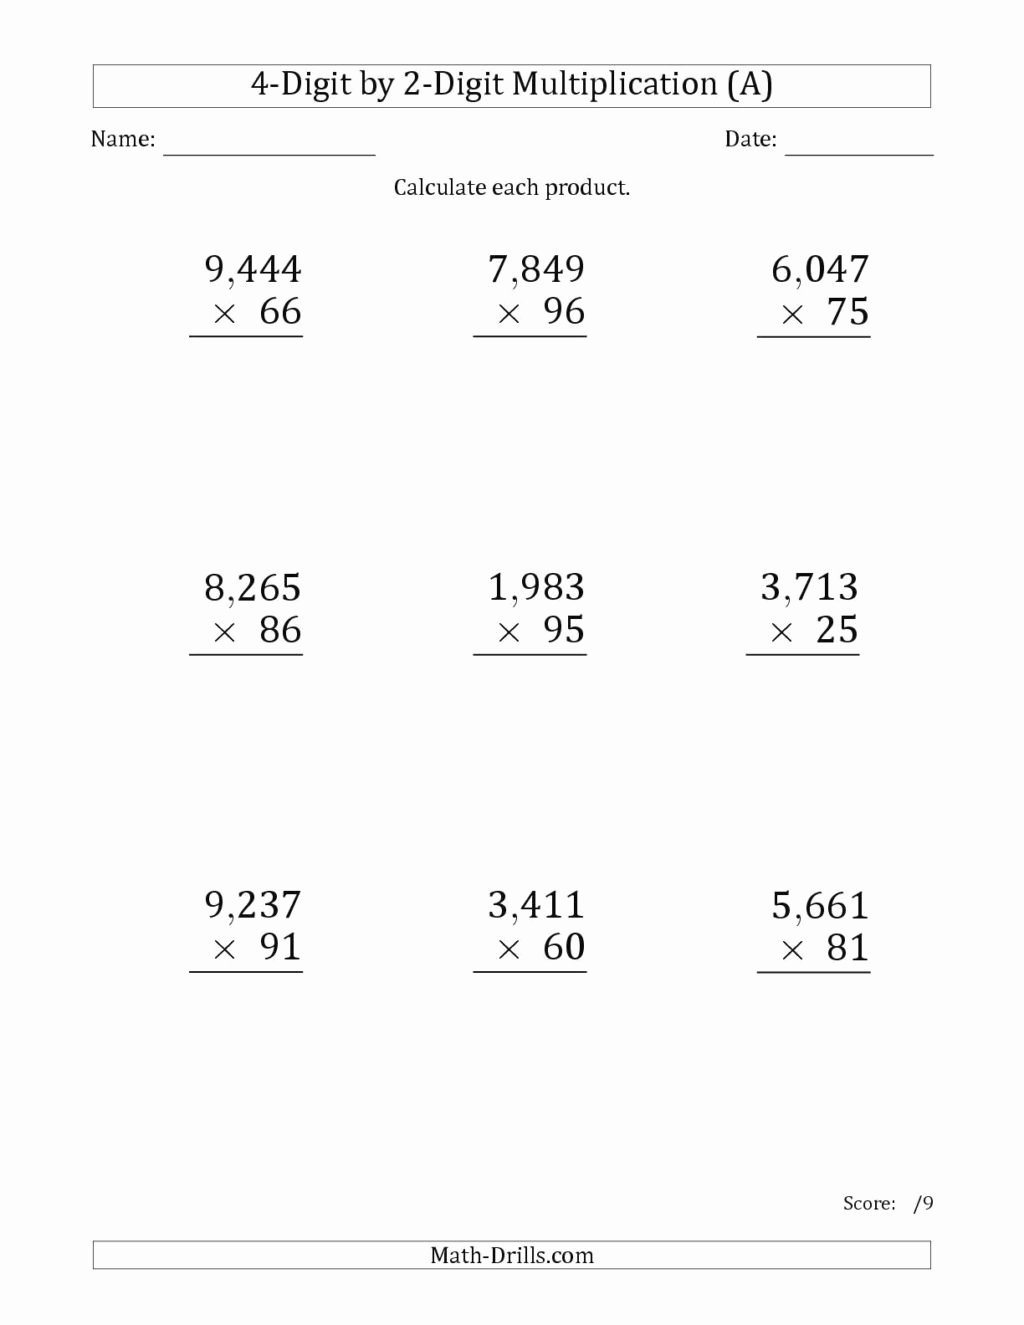 Free 2 Digit Multiplication Worksheets New Worksheet Splendin Worksheets for Grade and Lacerations